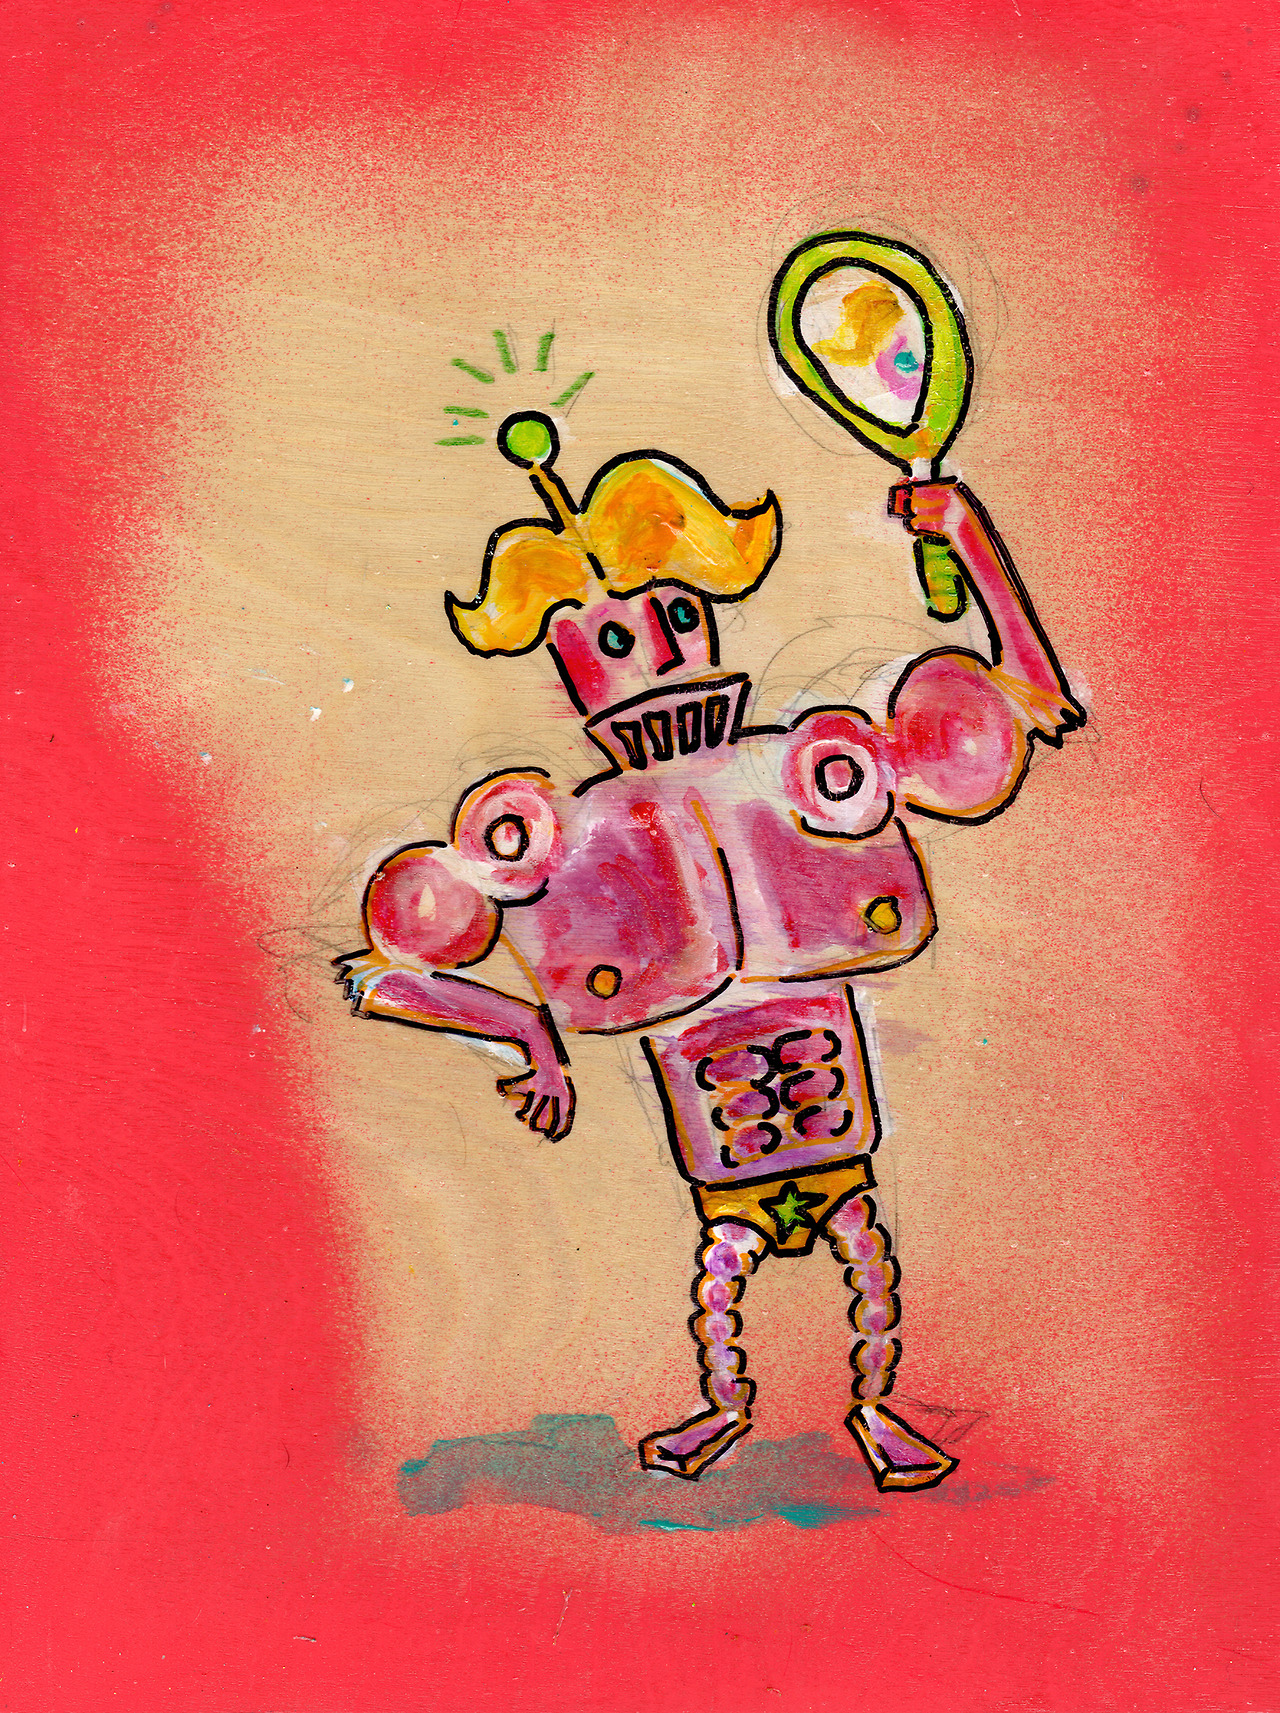 10/5/13 - Deadly Sinbots 3: Vanitron. Yup. A robot with a 6 pack. And not a pbr-type sixpack. Happy Saturday. Buy it here: http://taylorwinder.bigcartel.com Prints of it here: http://society6.com/taylorwinder